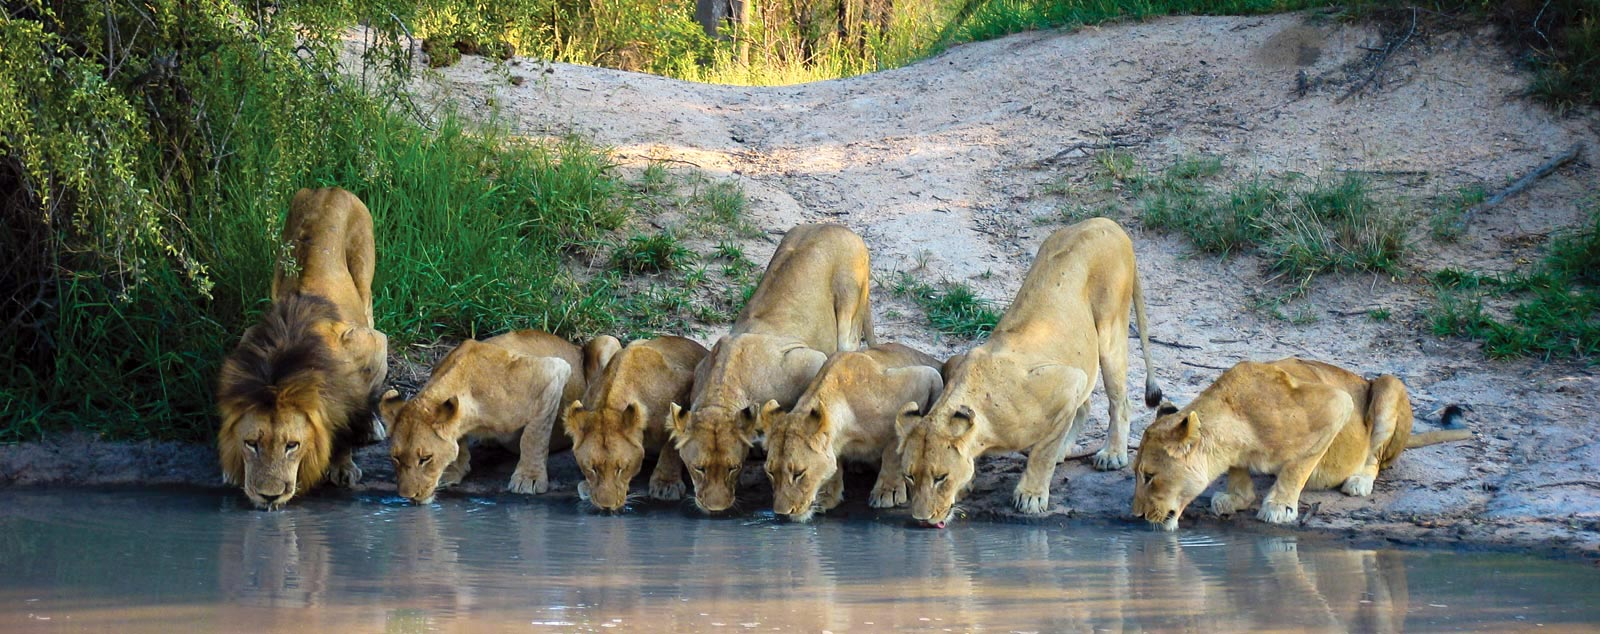 A lion and his pride of six lionesses crouched by a watering hole drinking water